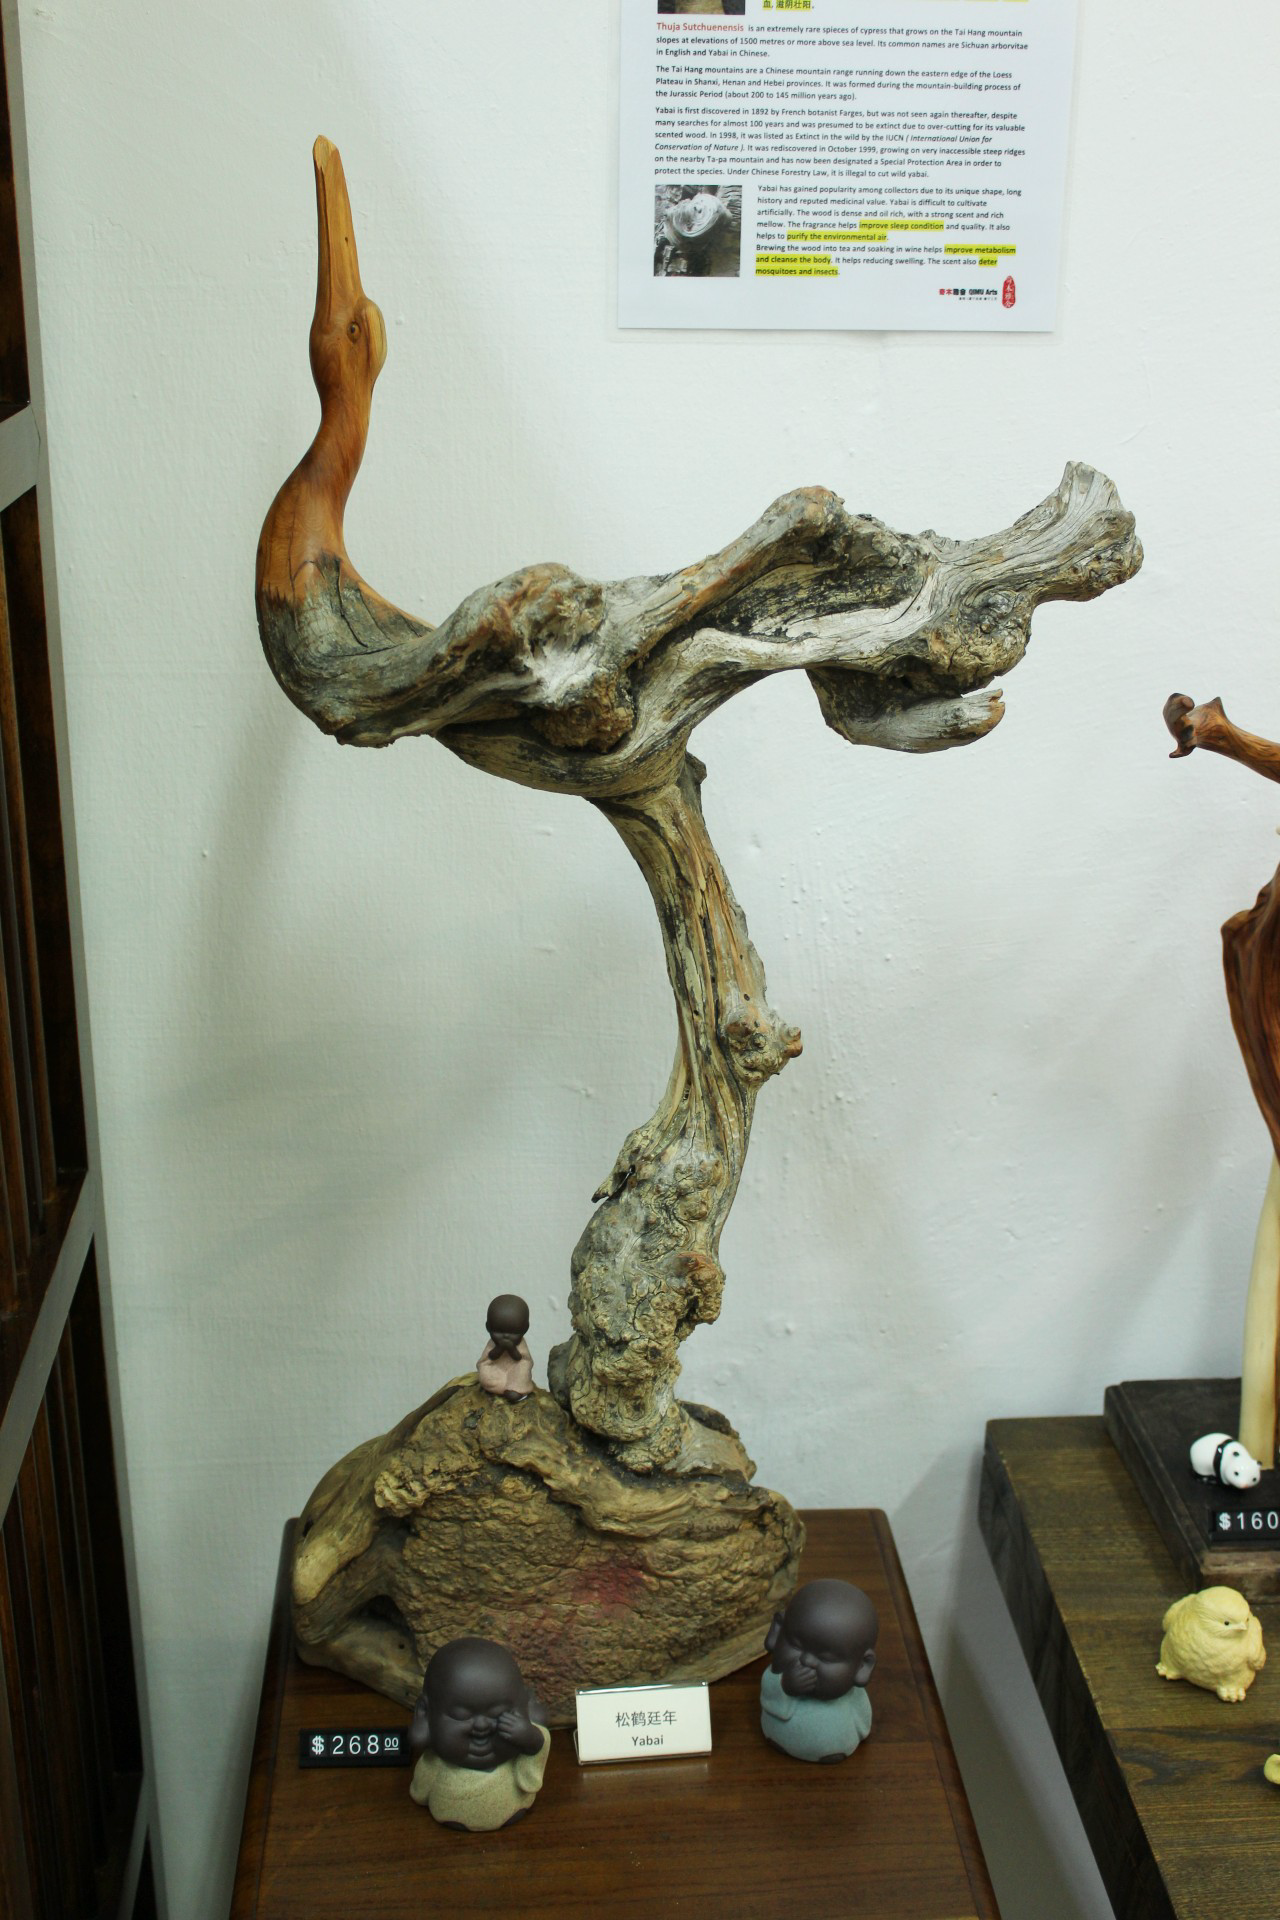 Yabai wood, with some additional carving